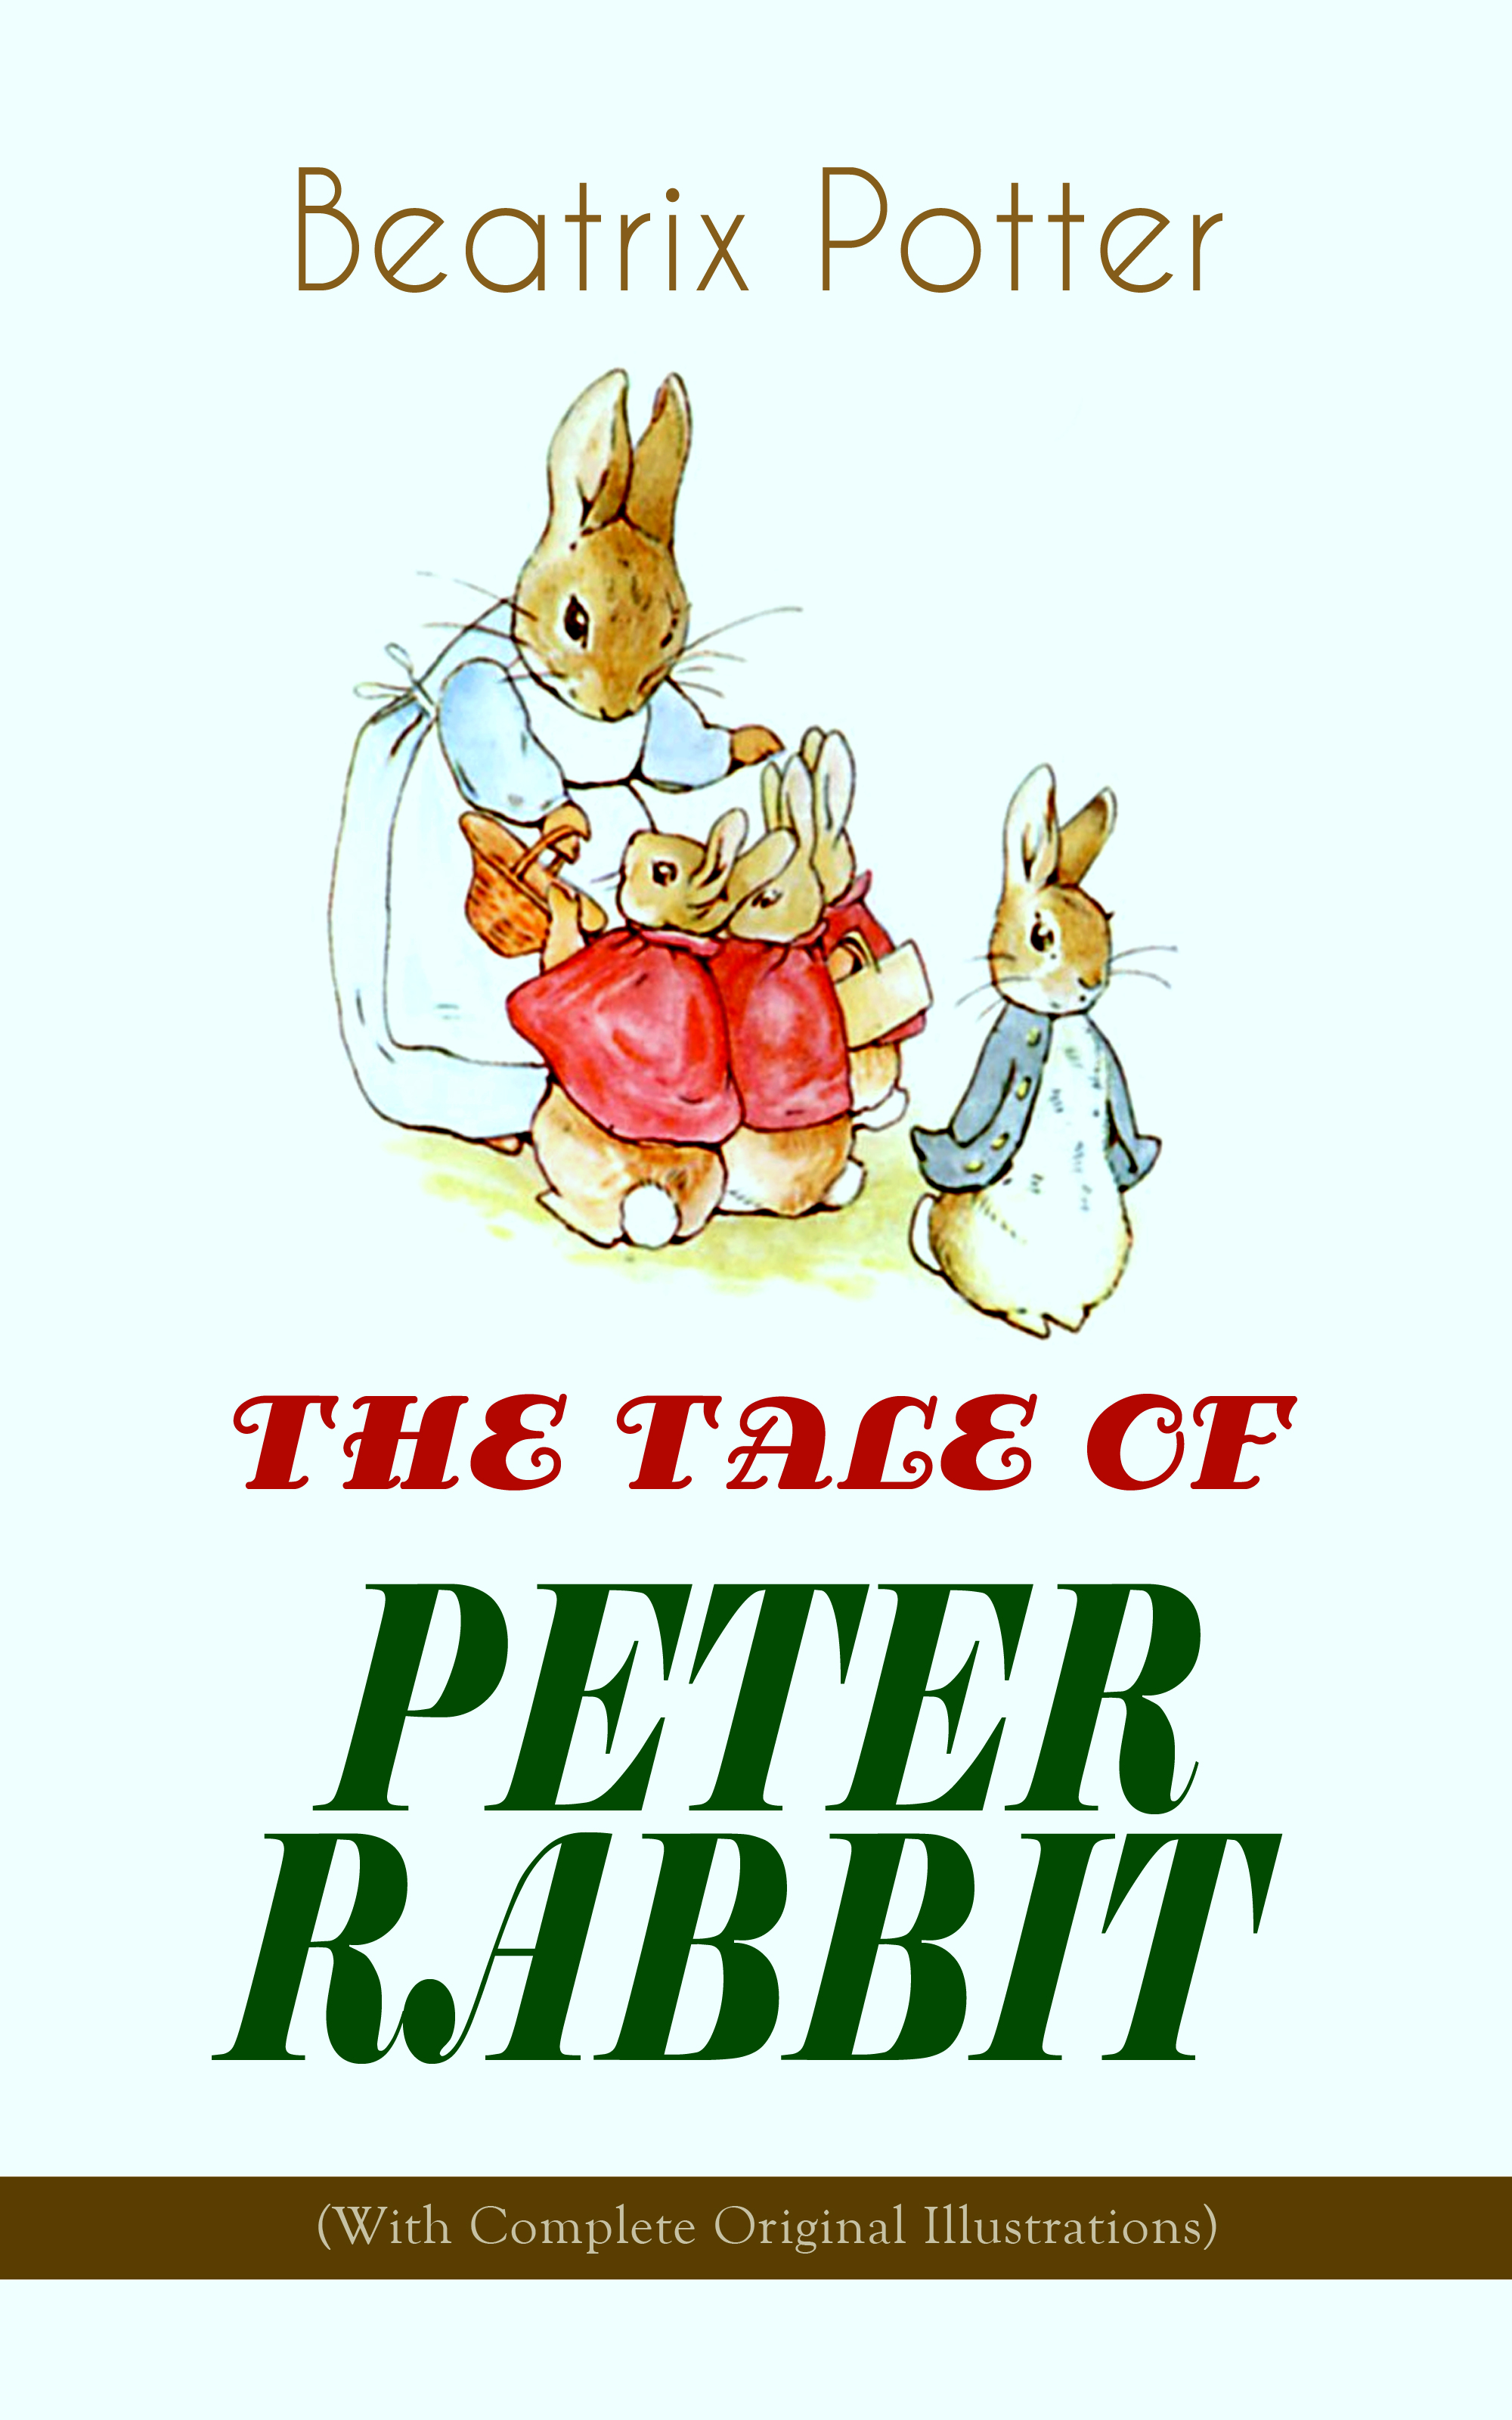 Beatrix Potter THE TALE OF PETER RABBIT (With Complete Original Illustrations)